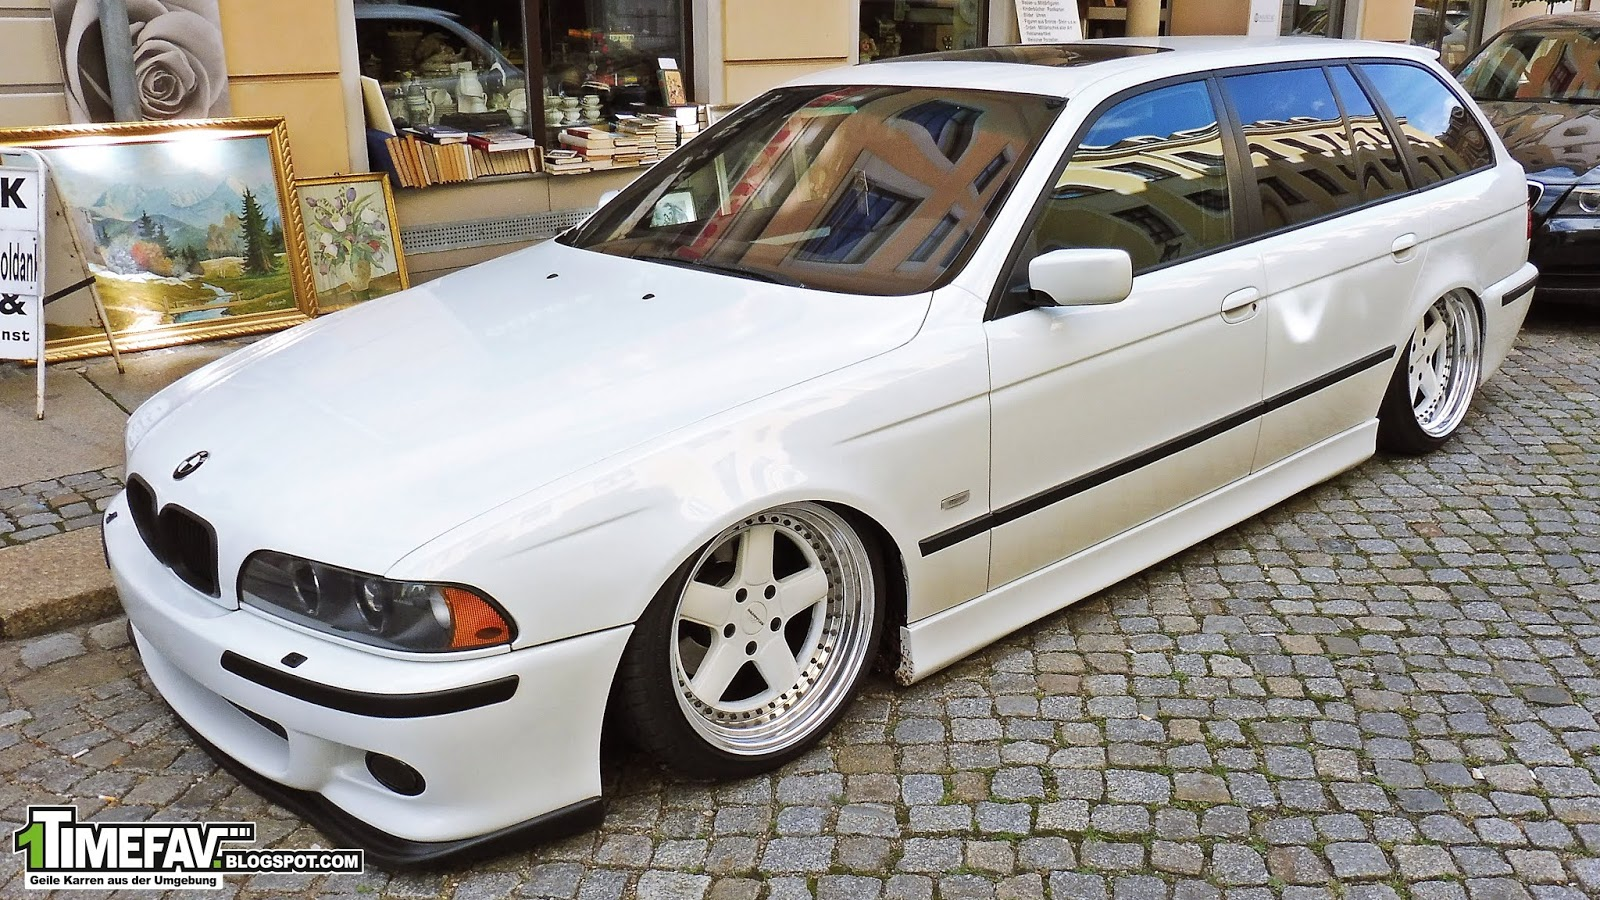 1timefav E39 On Air